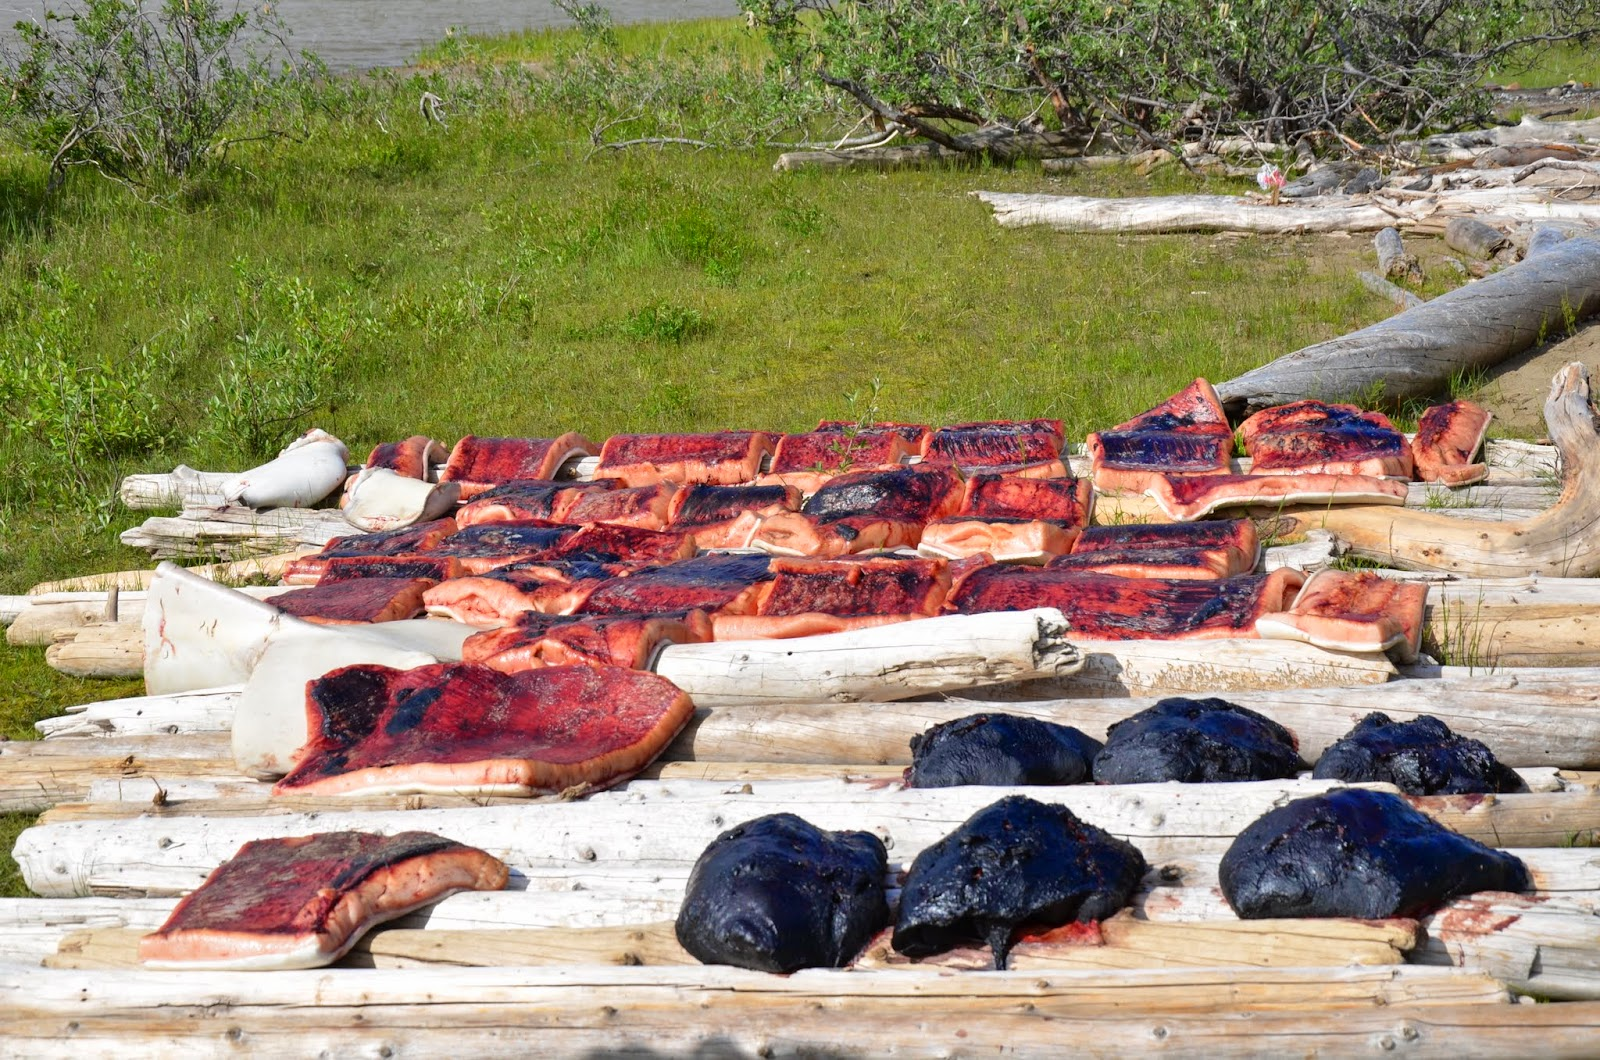 Muktuk and whale meat drying.